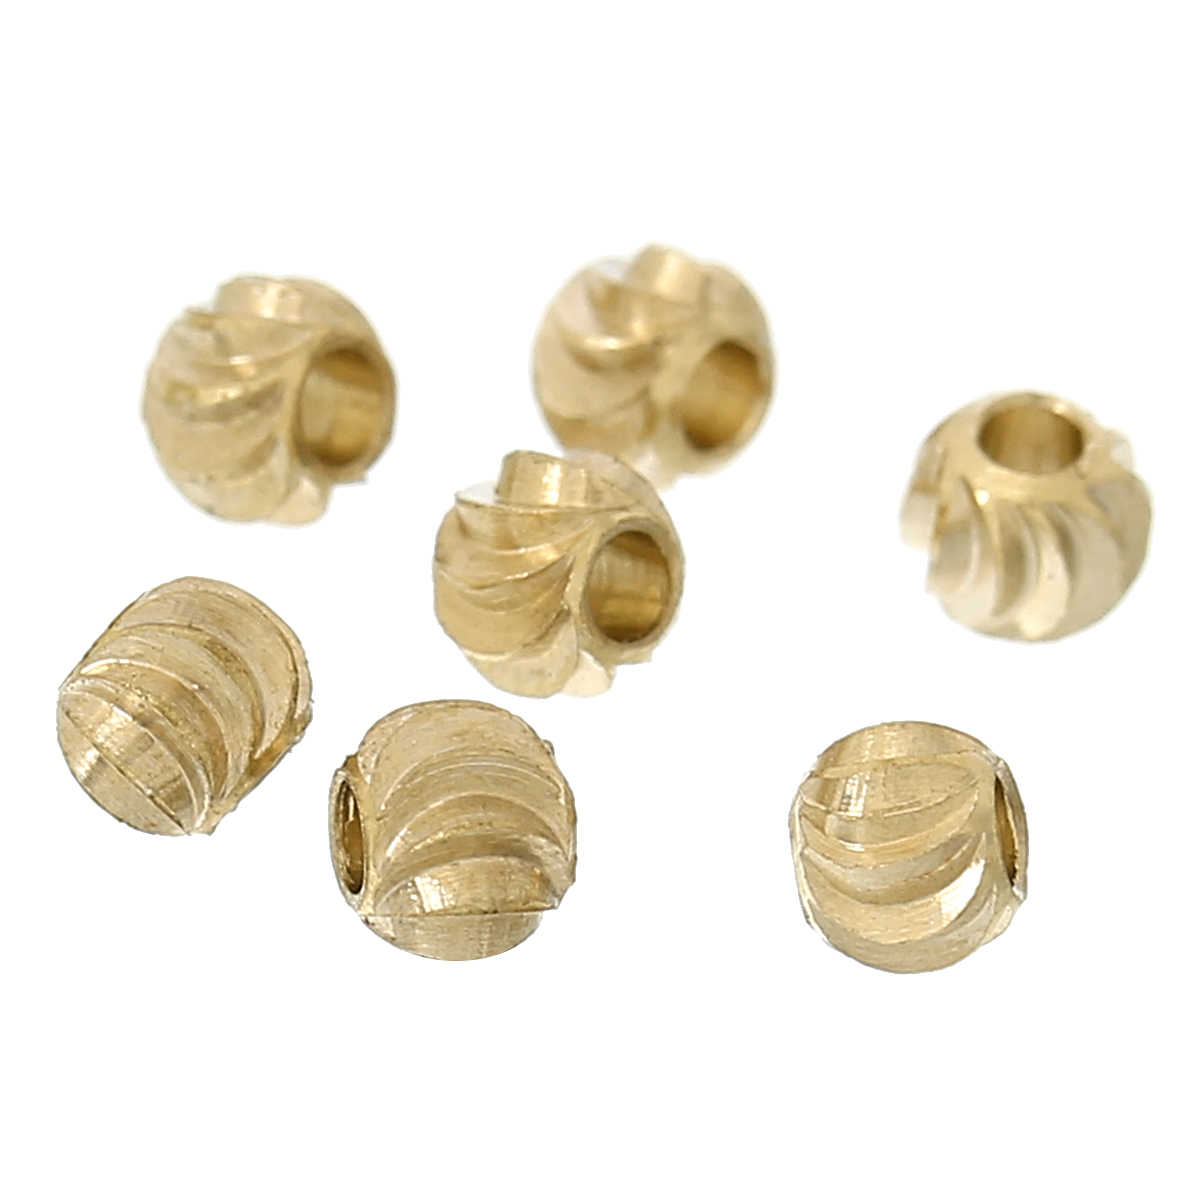 DoreenBeads Hot Sale Jewelry Copper Spacer Metal Beads Round Light Golden About 3mm Dia, Hole:Approx 1.3mm, 15 Pieces